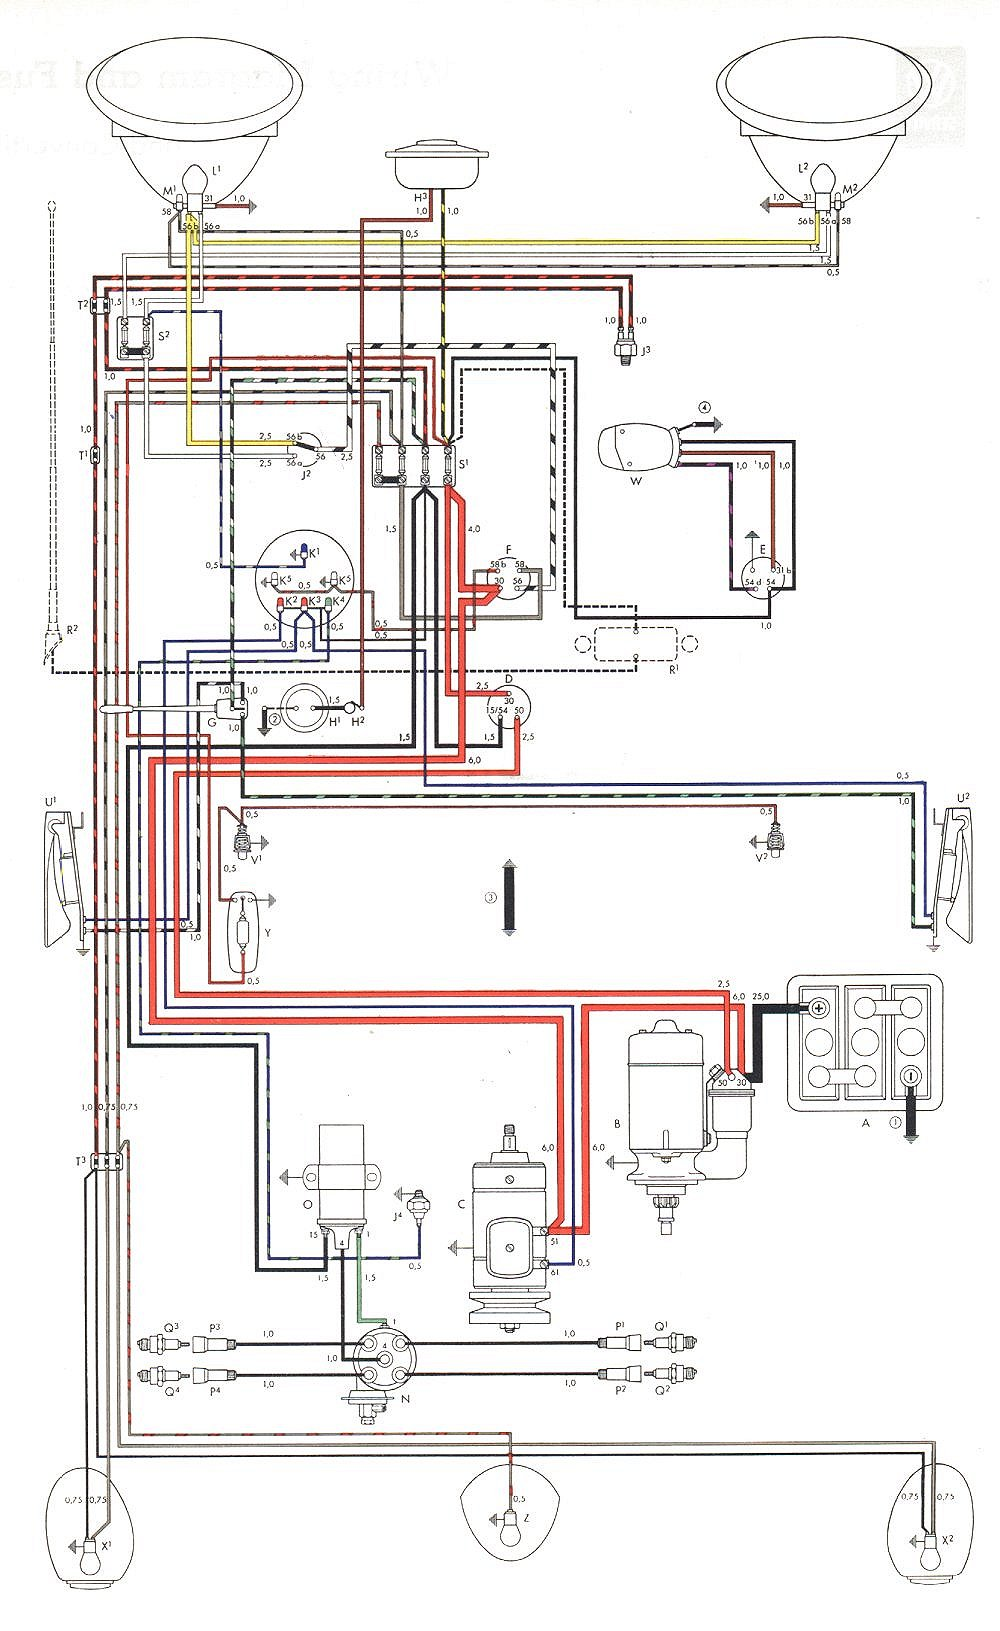 1970 vw bug wiring schematic